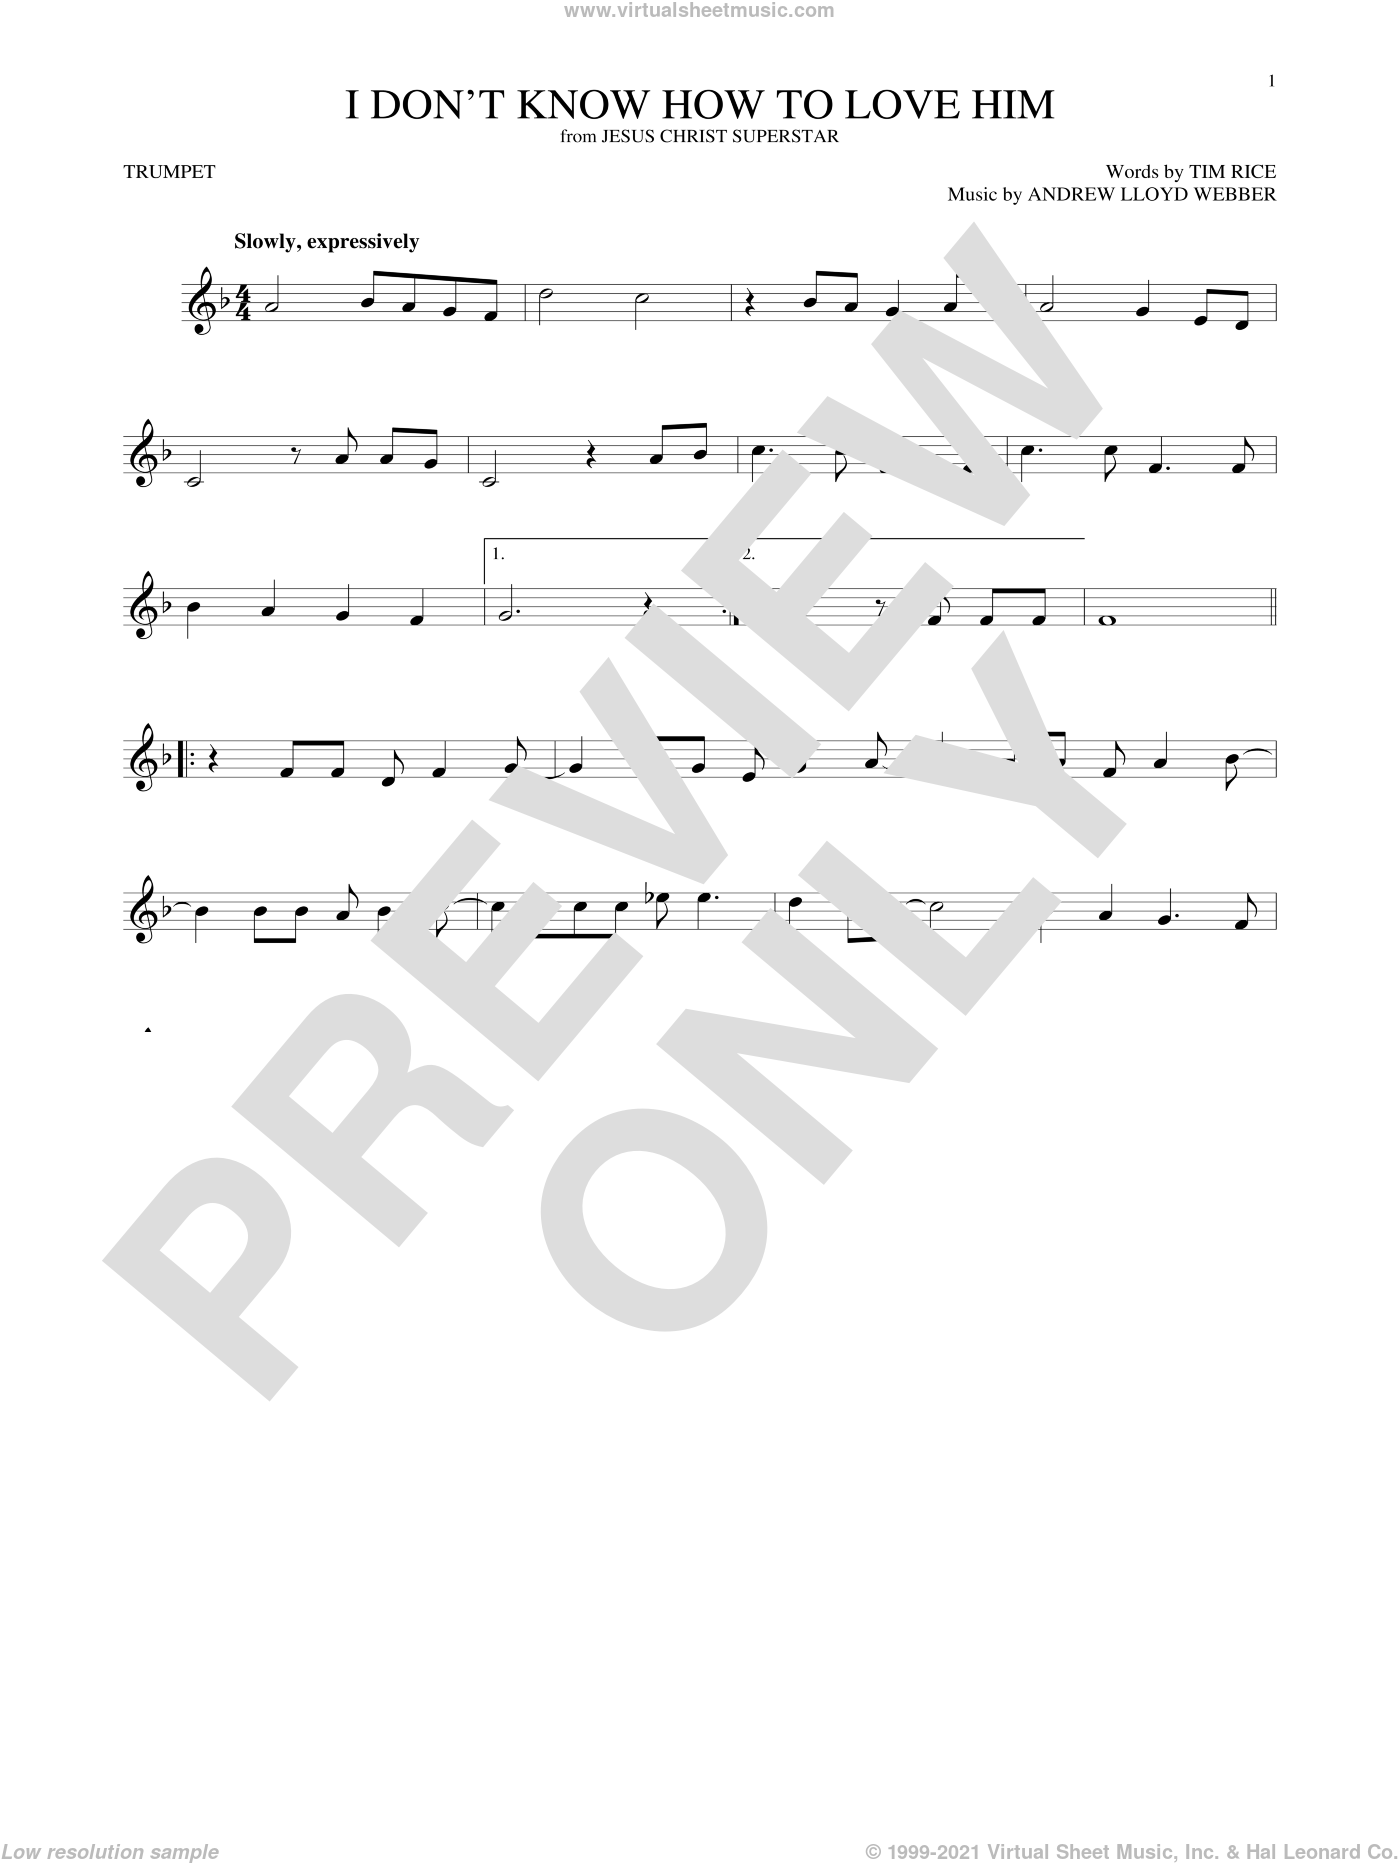 I Don't Know How To Love Him sheet music for trumpet solo by Andrew Lloyd Webber, Helen Reddy and Tim Rice, intermediate skill level